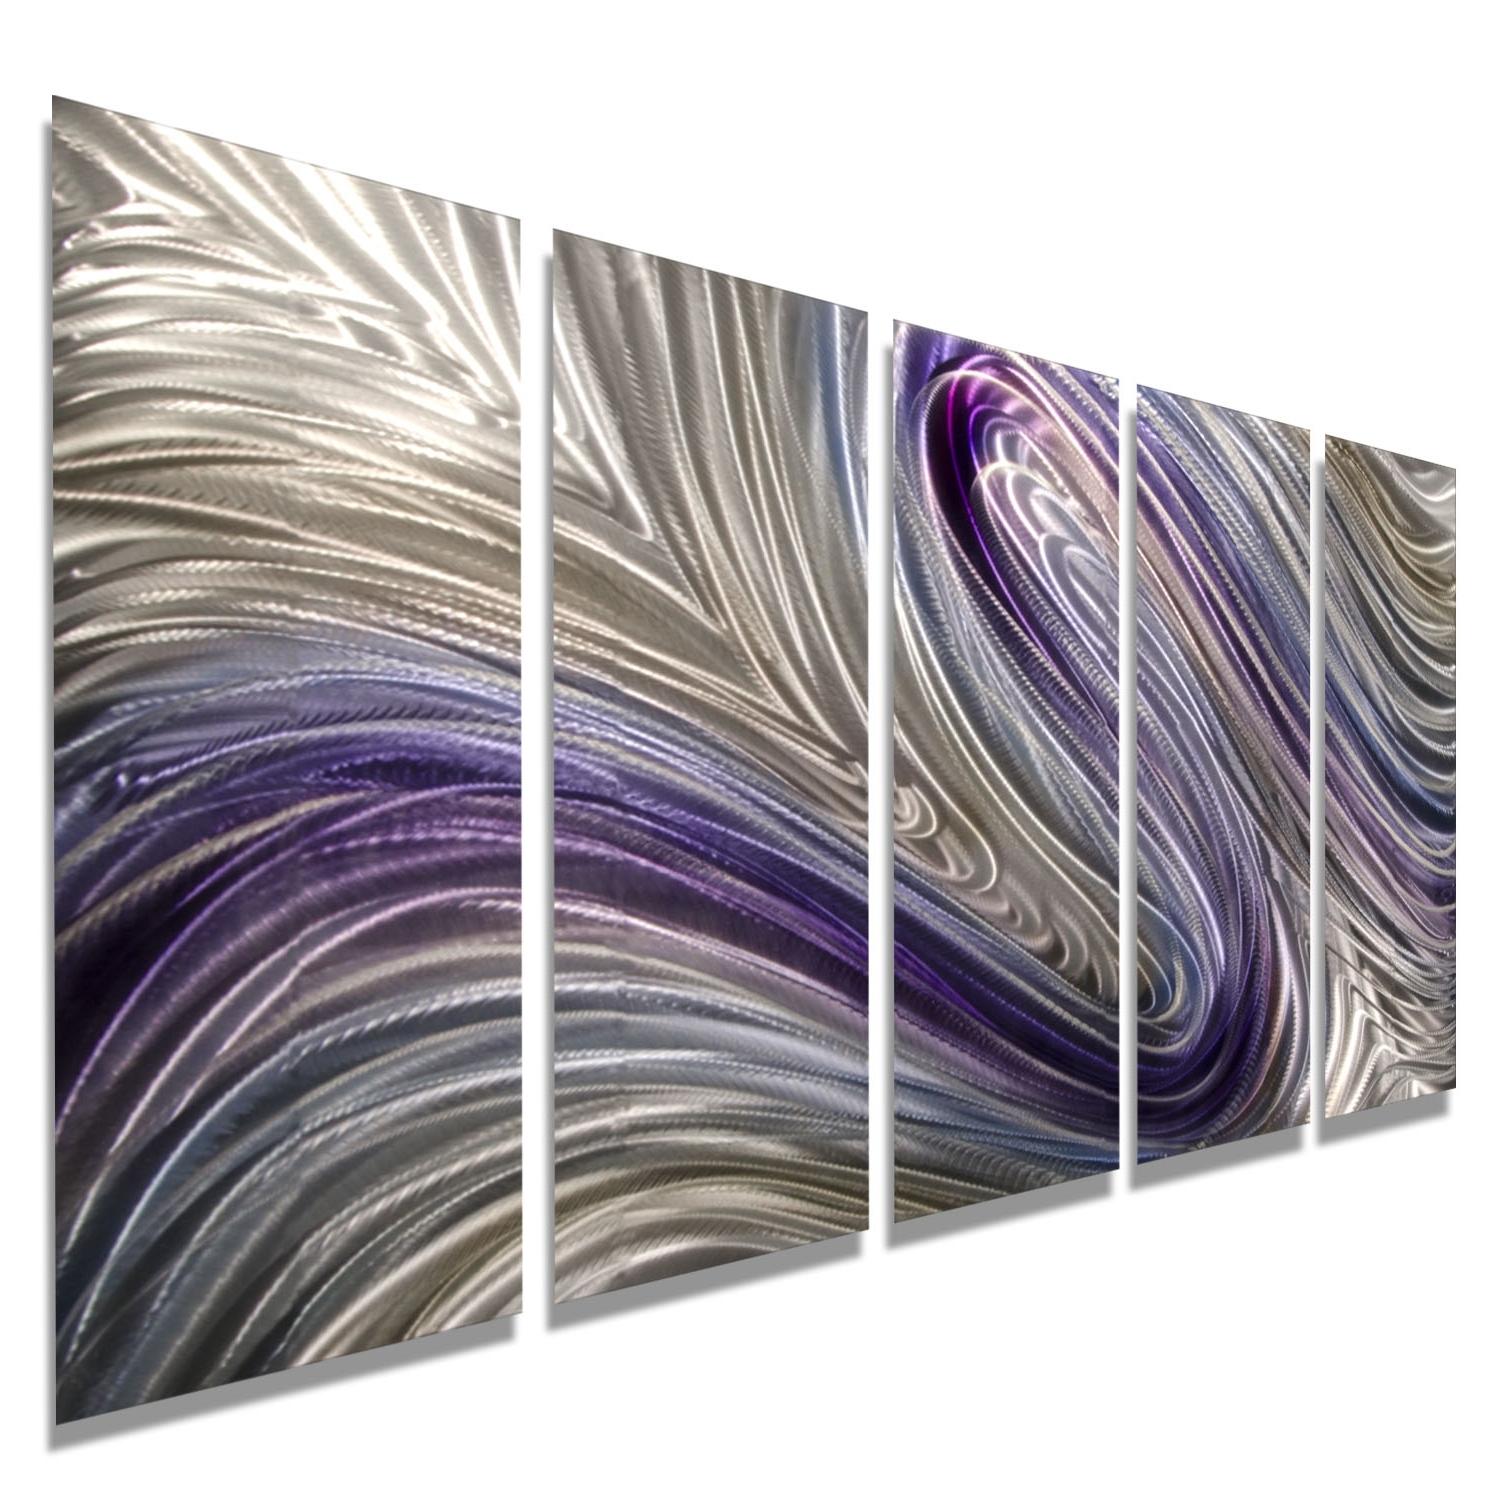 Trendy Purple Wall Art Pertaining To Reverie – Purple, Silver And Gold Metal Wall Art – 5 Panel Wall (View 12 of 15)